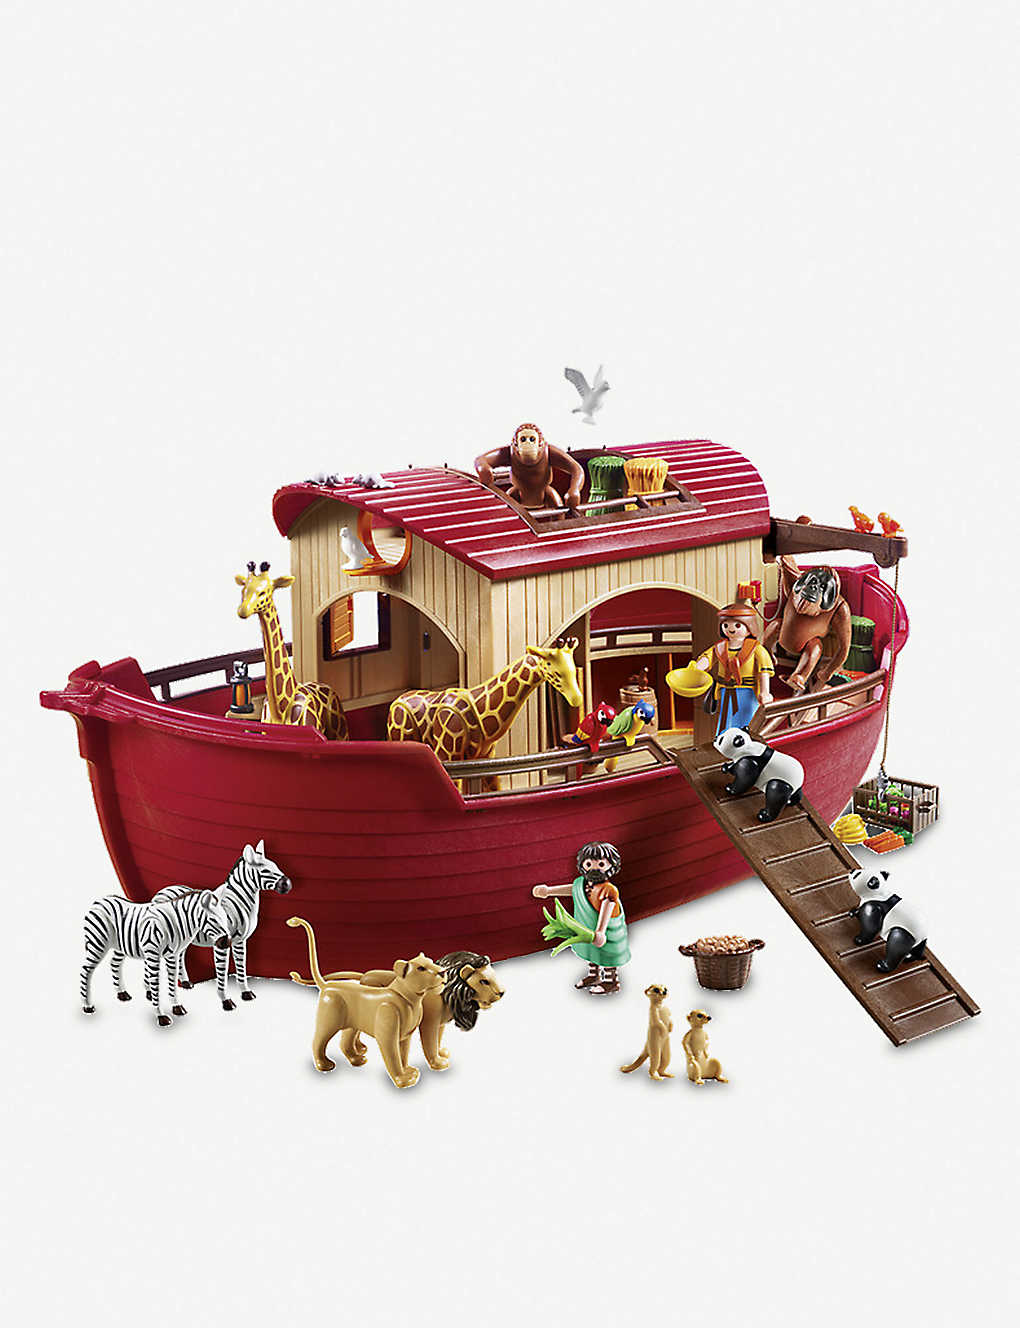 PLAYMOBIL: Wild Life Noah's Ark play set